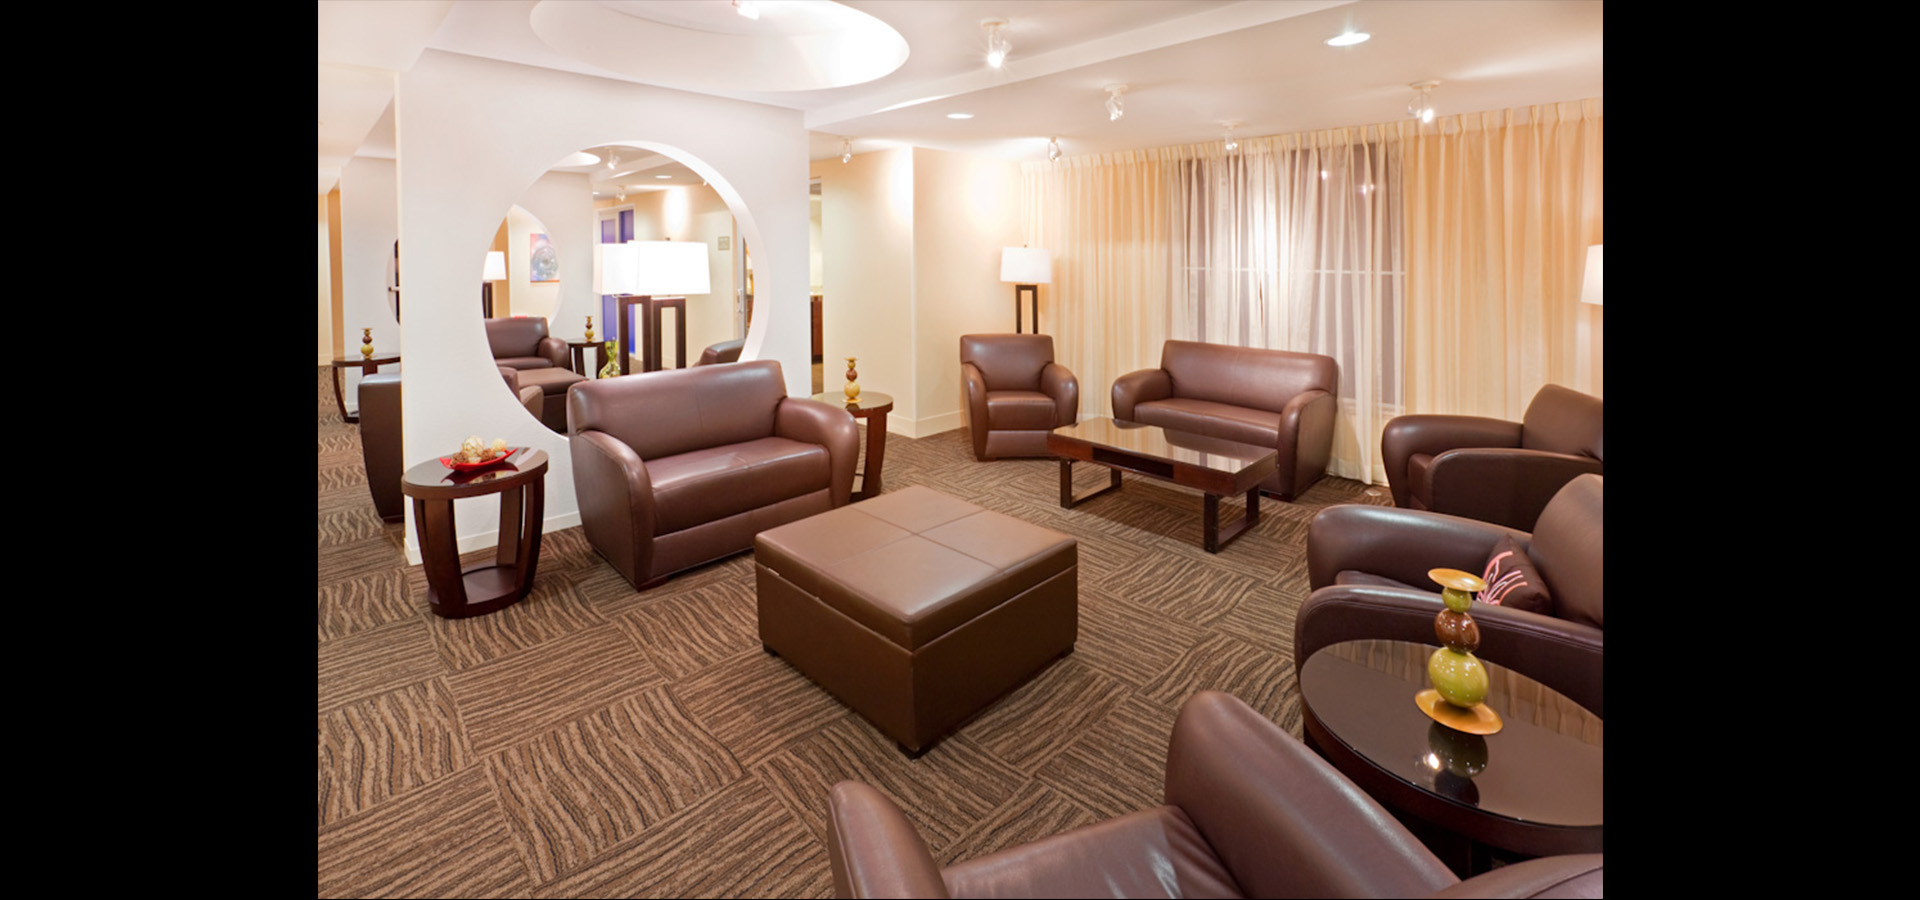 Candlewood Suites DFW South_12